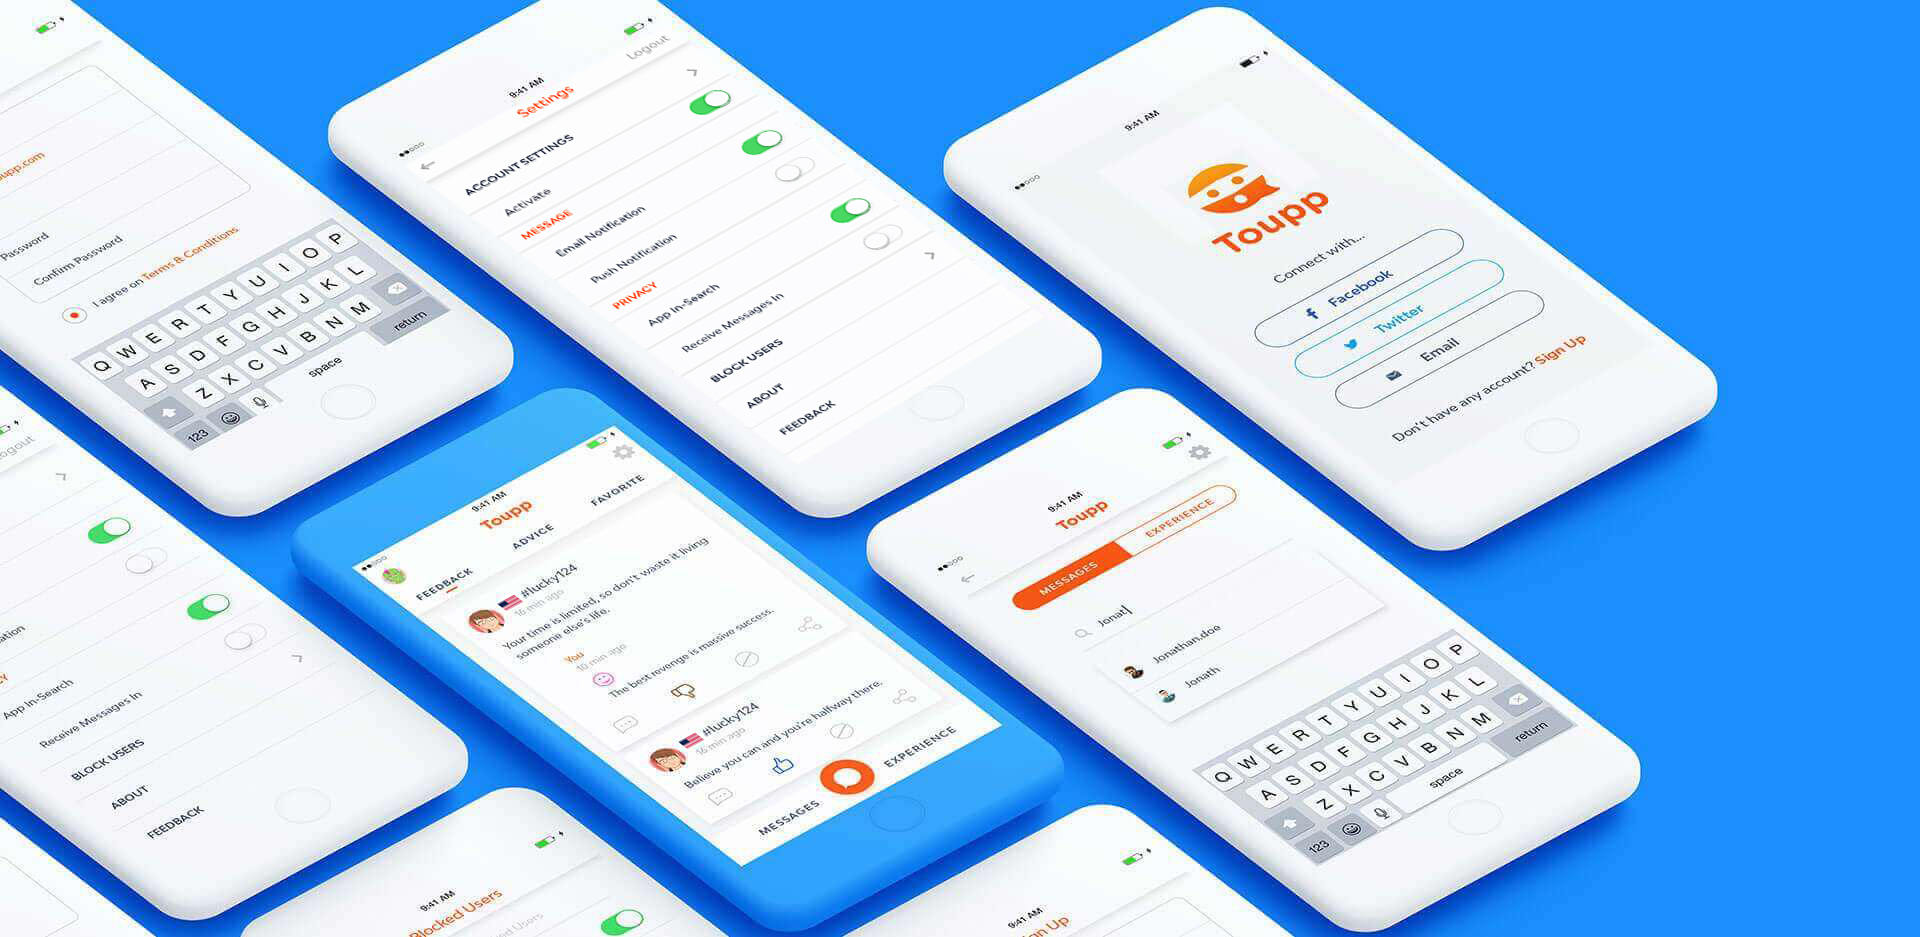 Anonymous Messaging App Screens